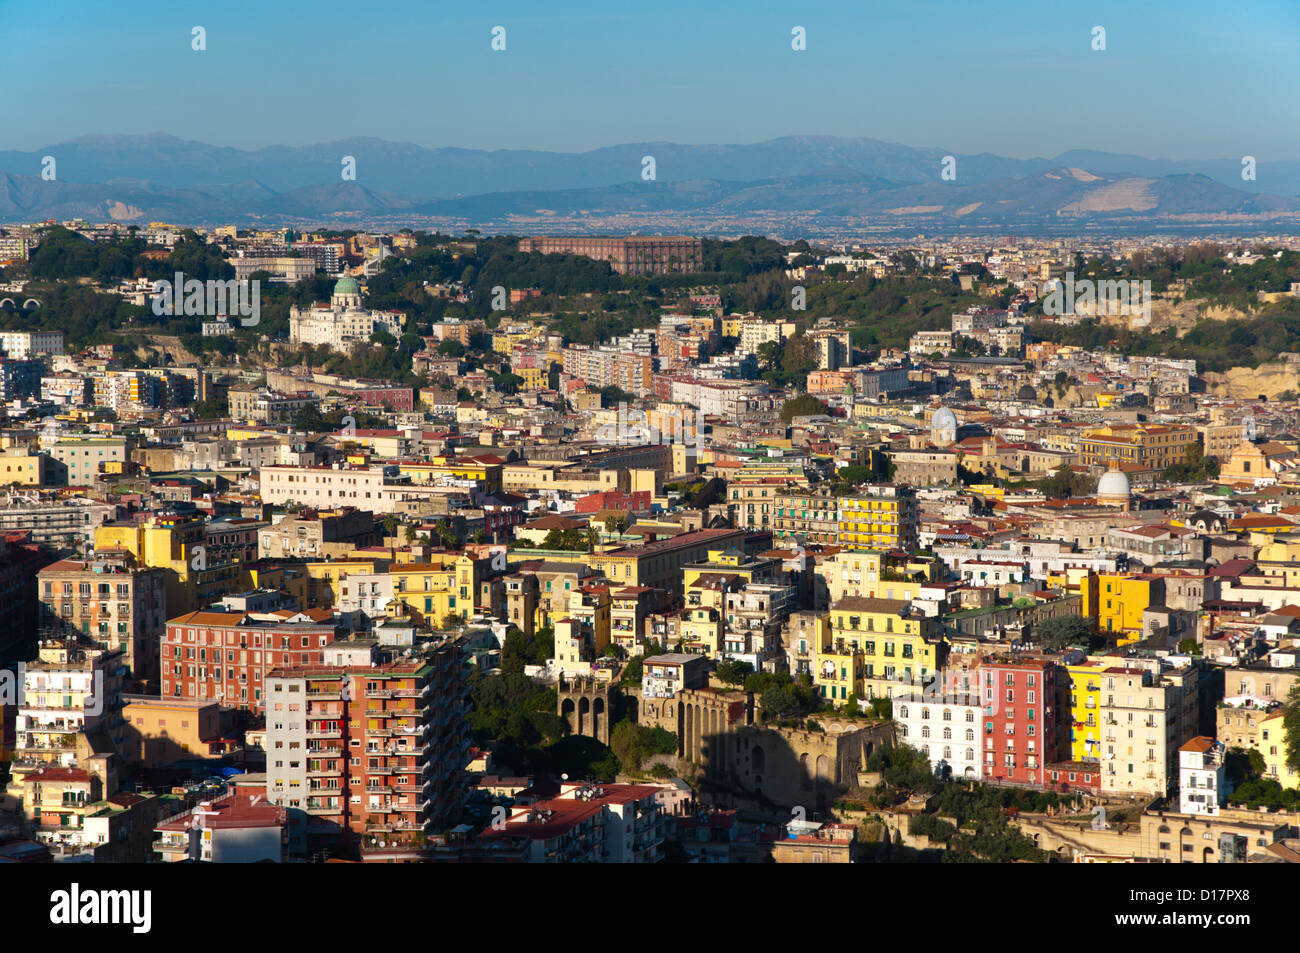 Materdel and other central district with Palazzo Reale di Capodimonte in background, Vomero, Naples, Italy - Stock Image